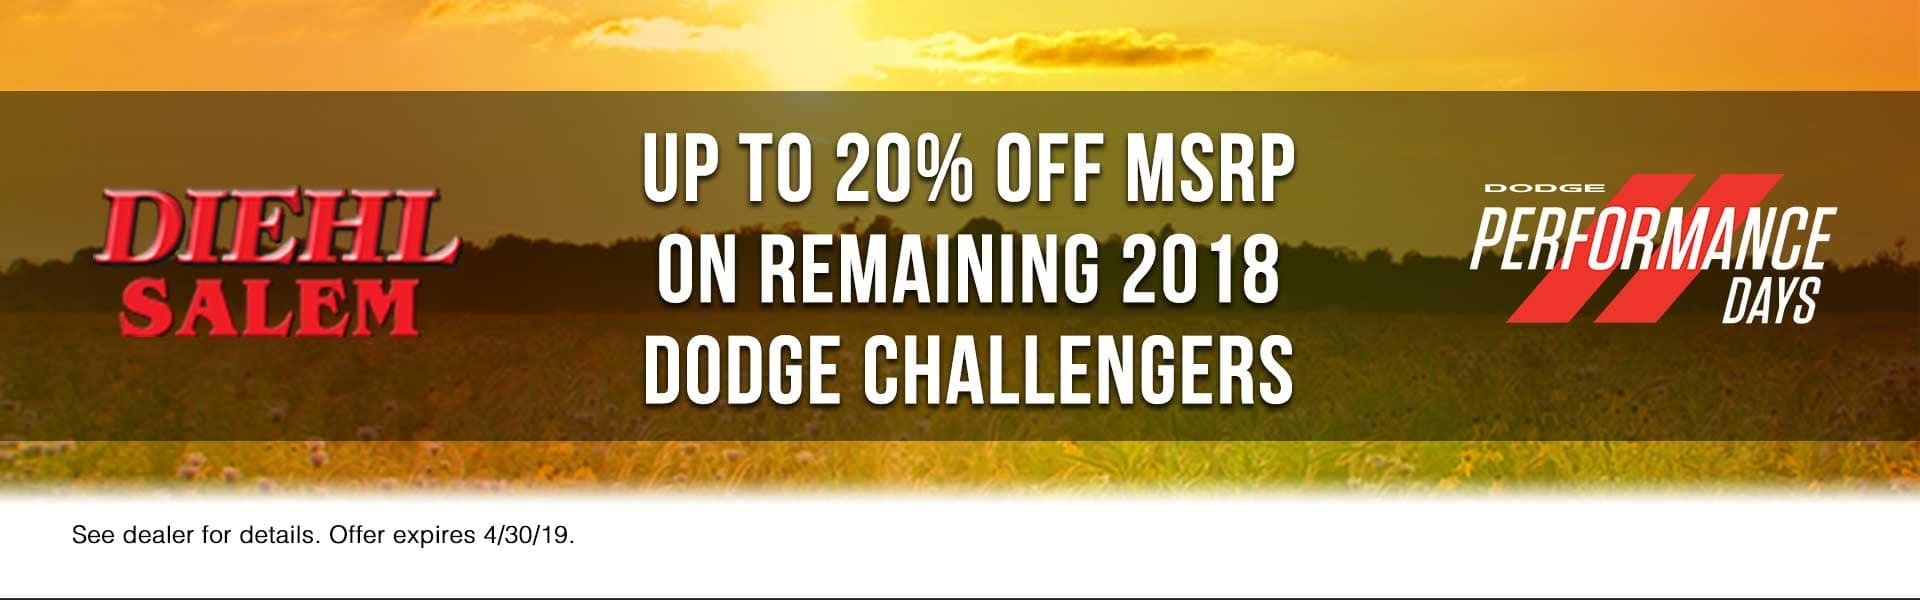 2018-challengers Spring sales event jeep freedom days dodge performance days new vehicle specials lease specials vehicle sales jeep special dodge special Chrysler special ram special diehl auto Salem Ohio